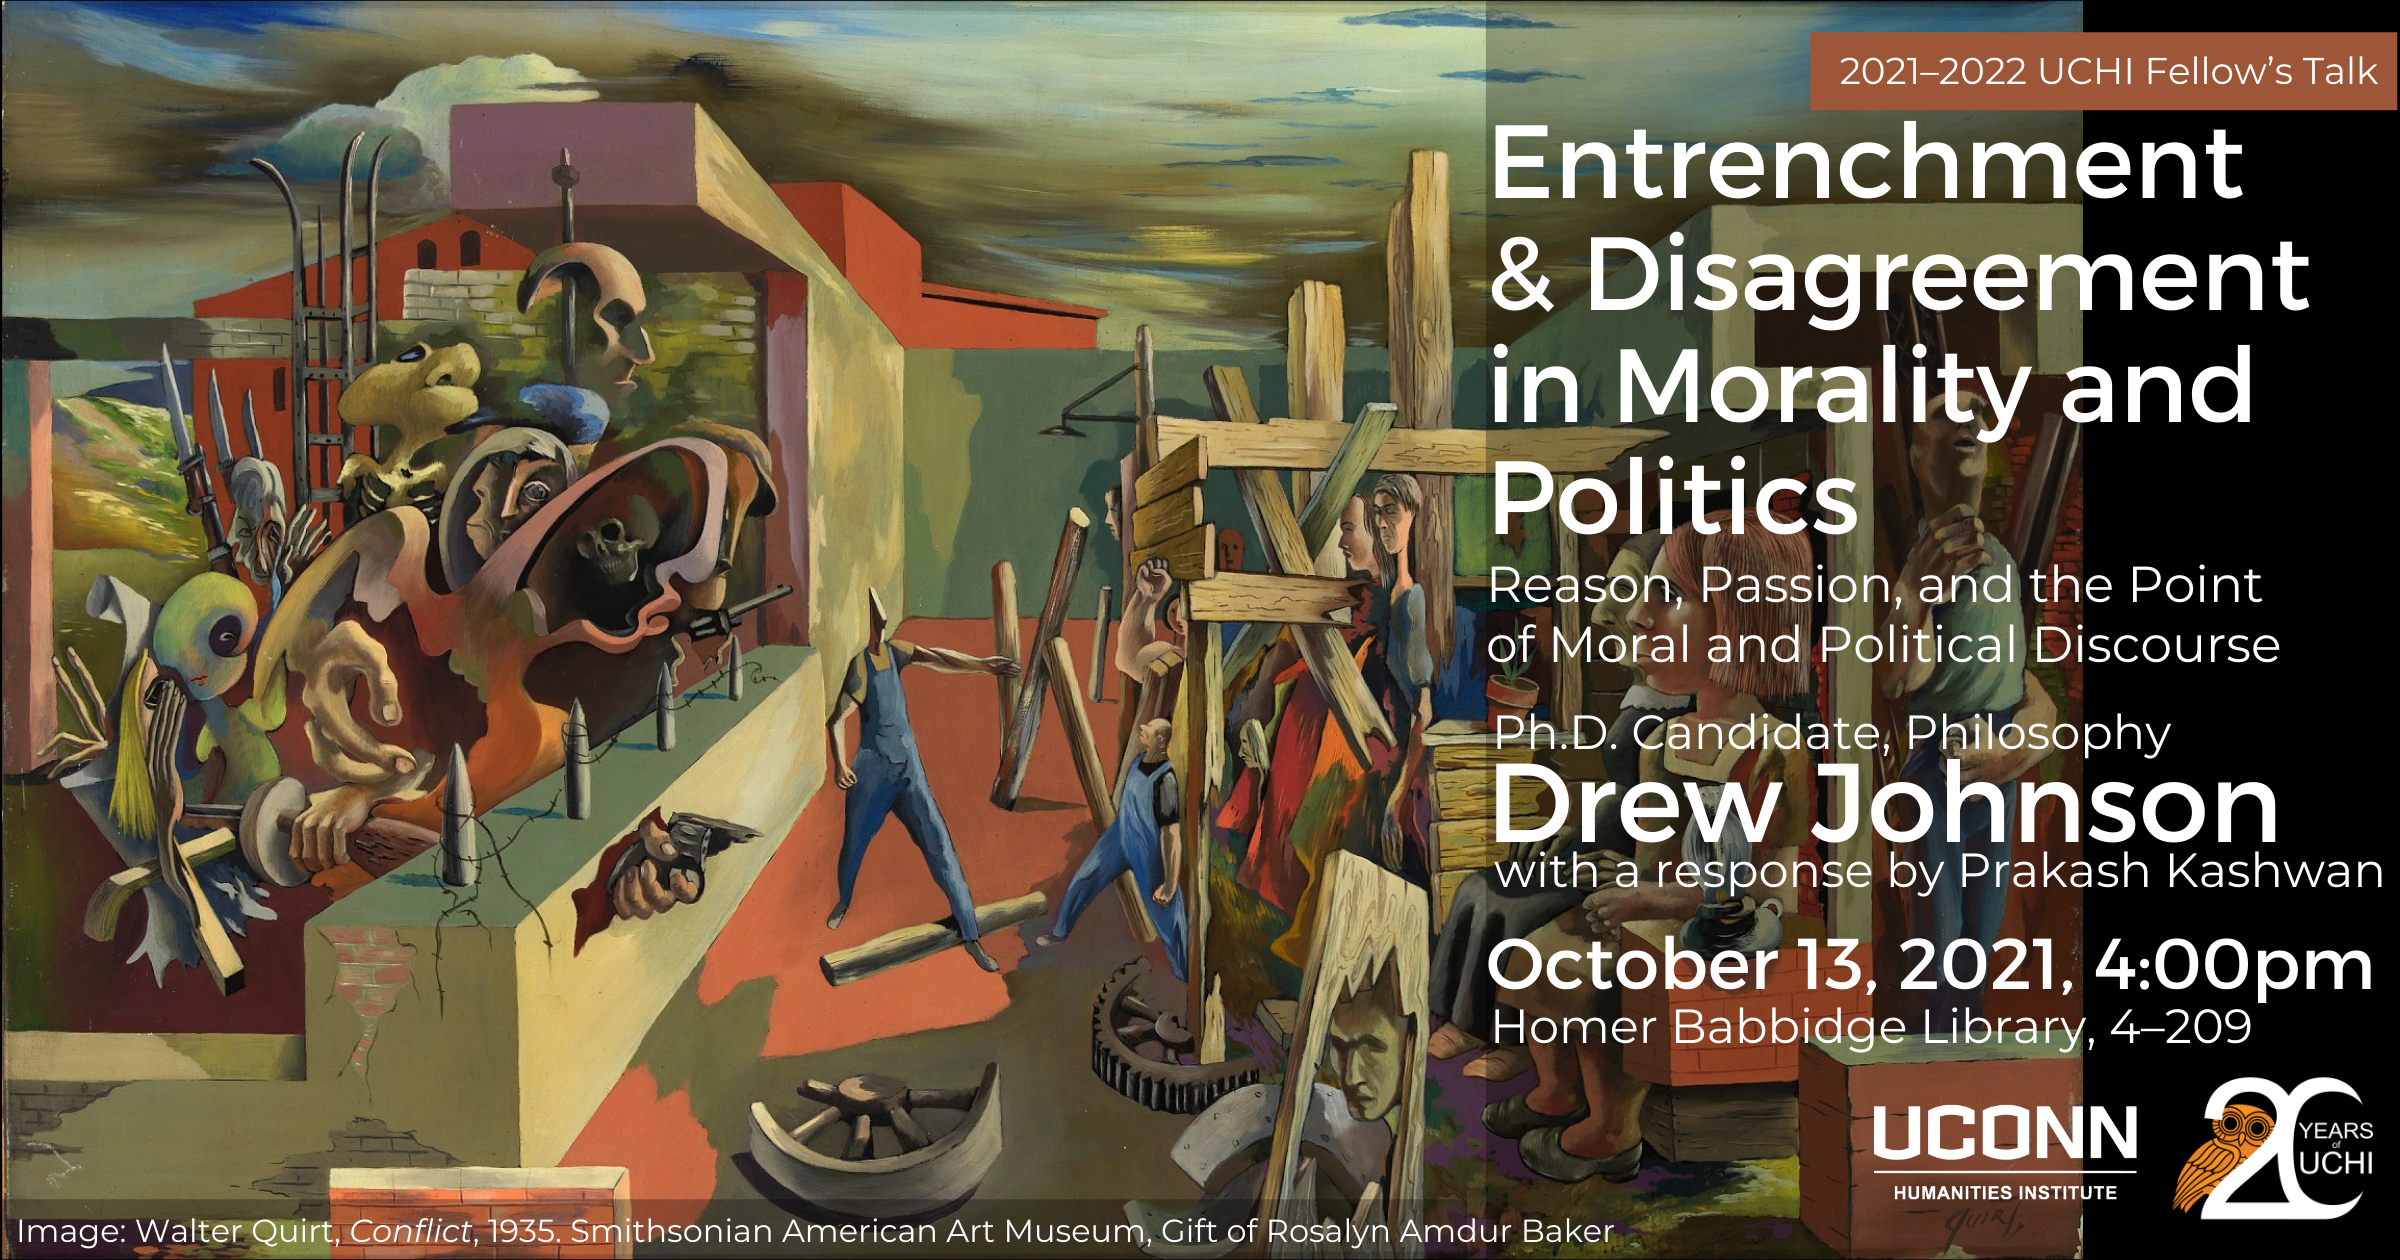 2021–22 UCHI Fellow's Talks. Entrenchment and Disagreement in Morality and Politics: Reason, Passion, and the Point of Moral and Political Discourse. Phd Candidate, Philosophy, Drew Johnson. With a response by Prakash Kashwan. October 13, 2021, 4:00pm, Homer Babbidge Library, 4-209